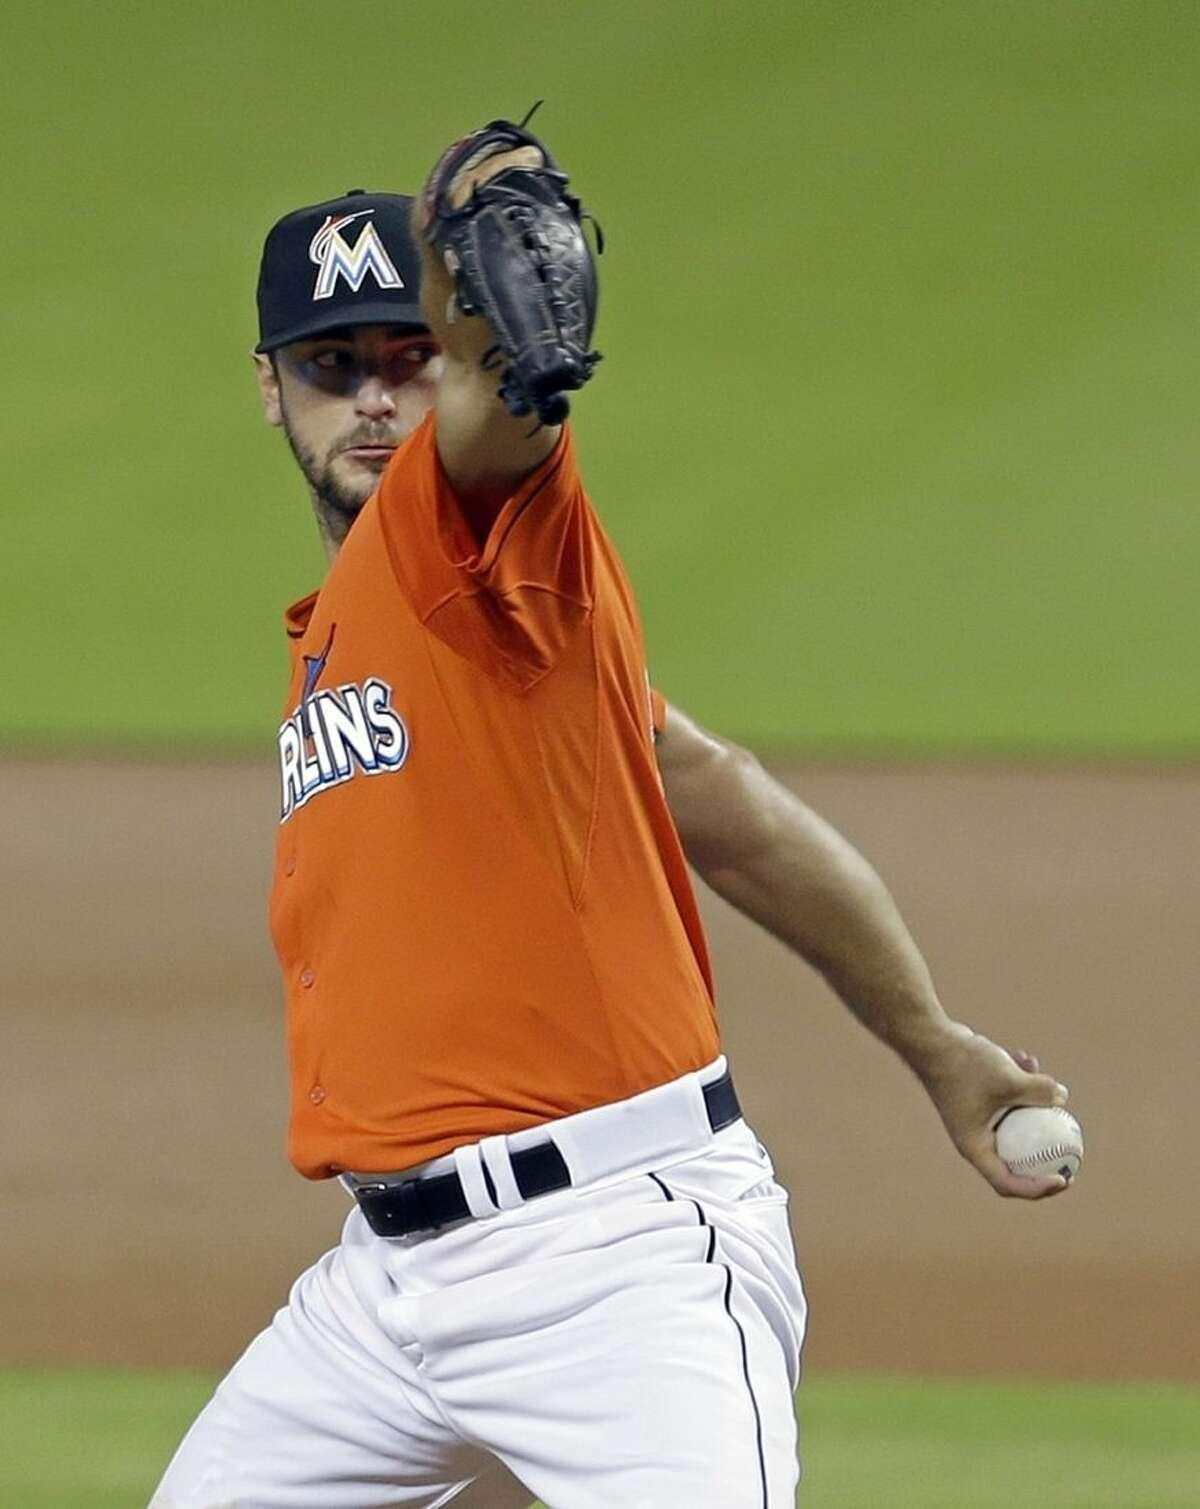 Miami Marlins' Jarred Cosart pitches against the New York Mets in the first inning of a baseball game, Sunday, Sept. 6, 2015, in Miami. (AP Photo/Alan Diaz)